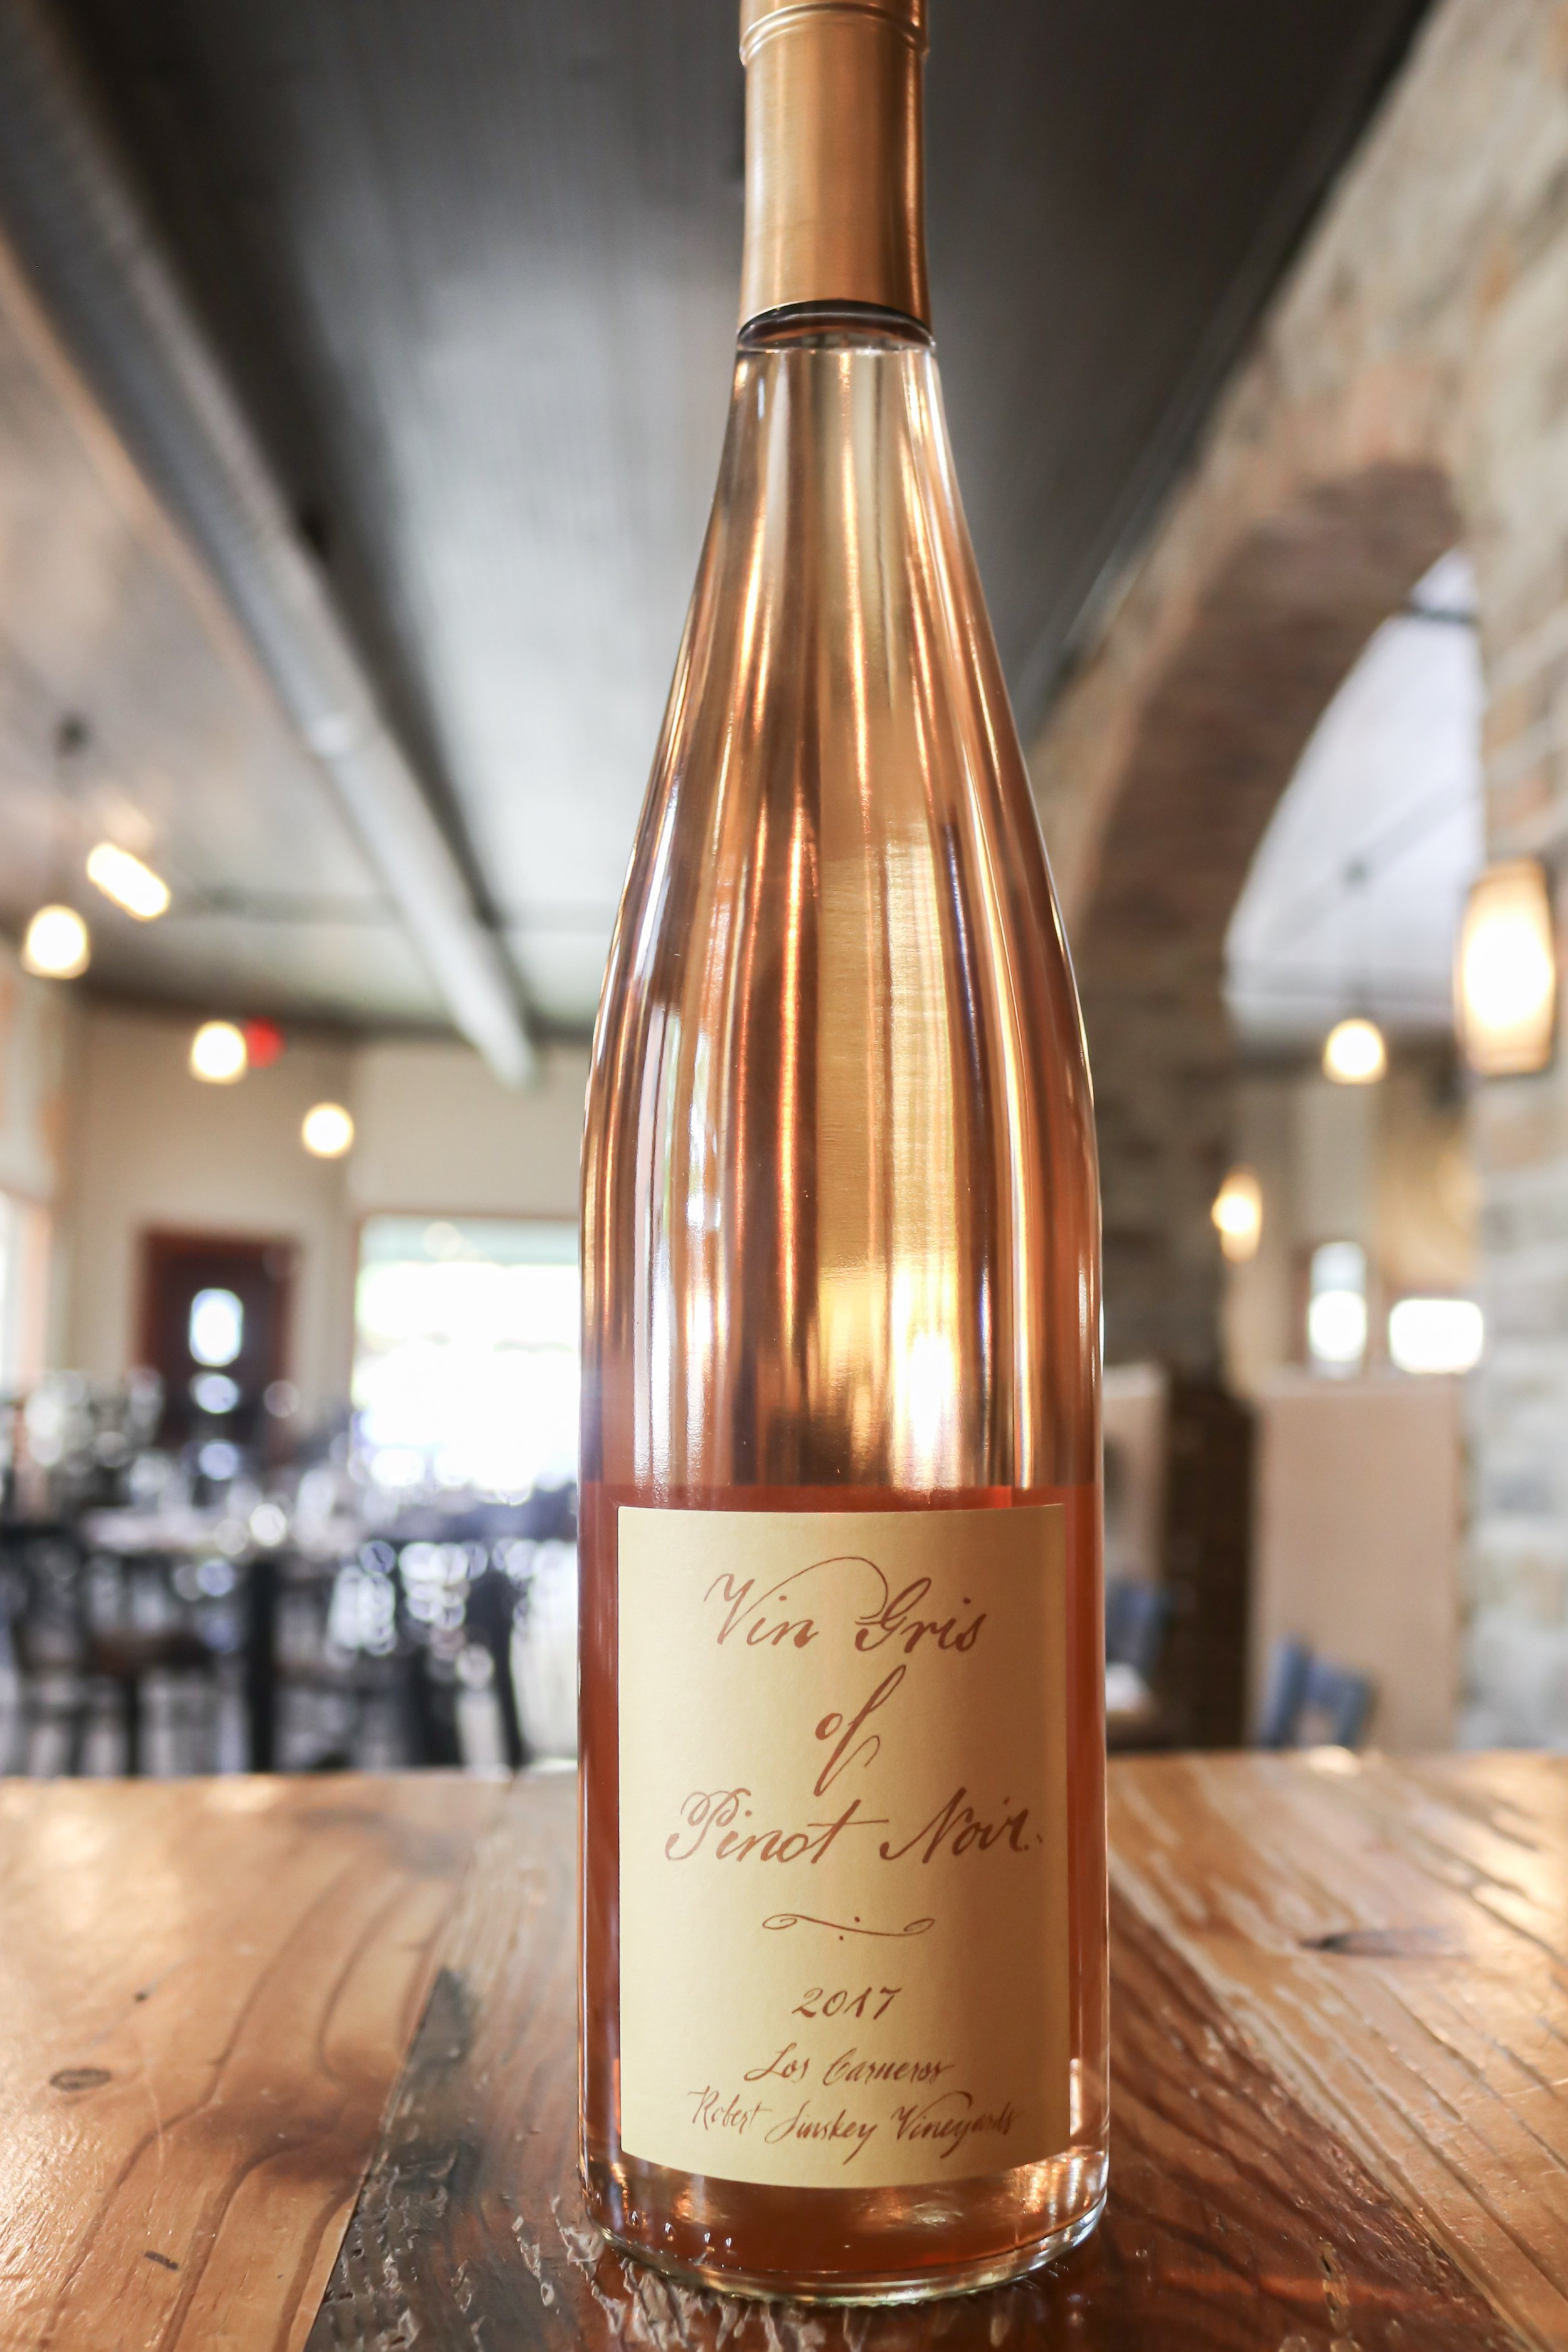 Robert Sinskey vin Gris - Wine Region: Carneros, CaliforniaGrape Varietals: Pinot NoirThree Tasting Notes: White strawberry, green apple, peachWhy I Like It: This is not your typical rosé, it has a unique gray/copper hue.Why You'll Like It: The vin Gris of Pinot Noir creates an elegant sipper made from the highest quality fruit.Price: $30